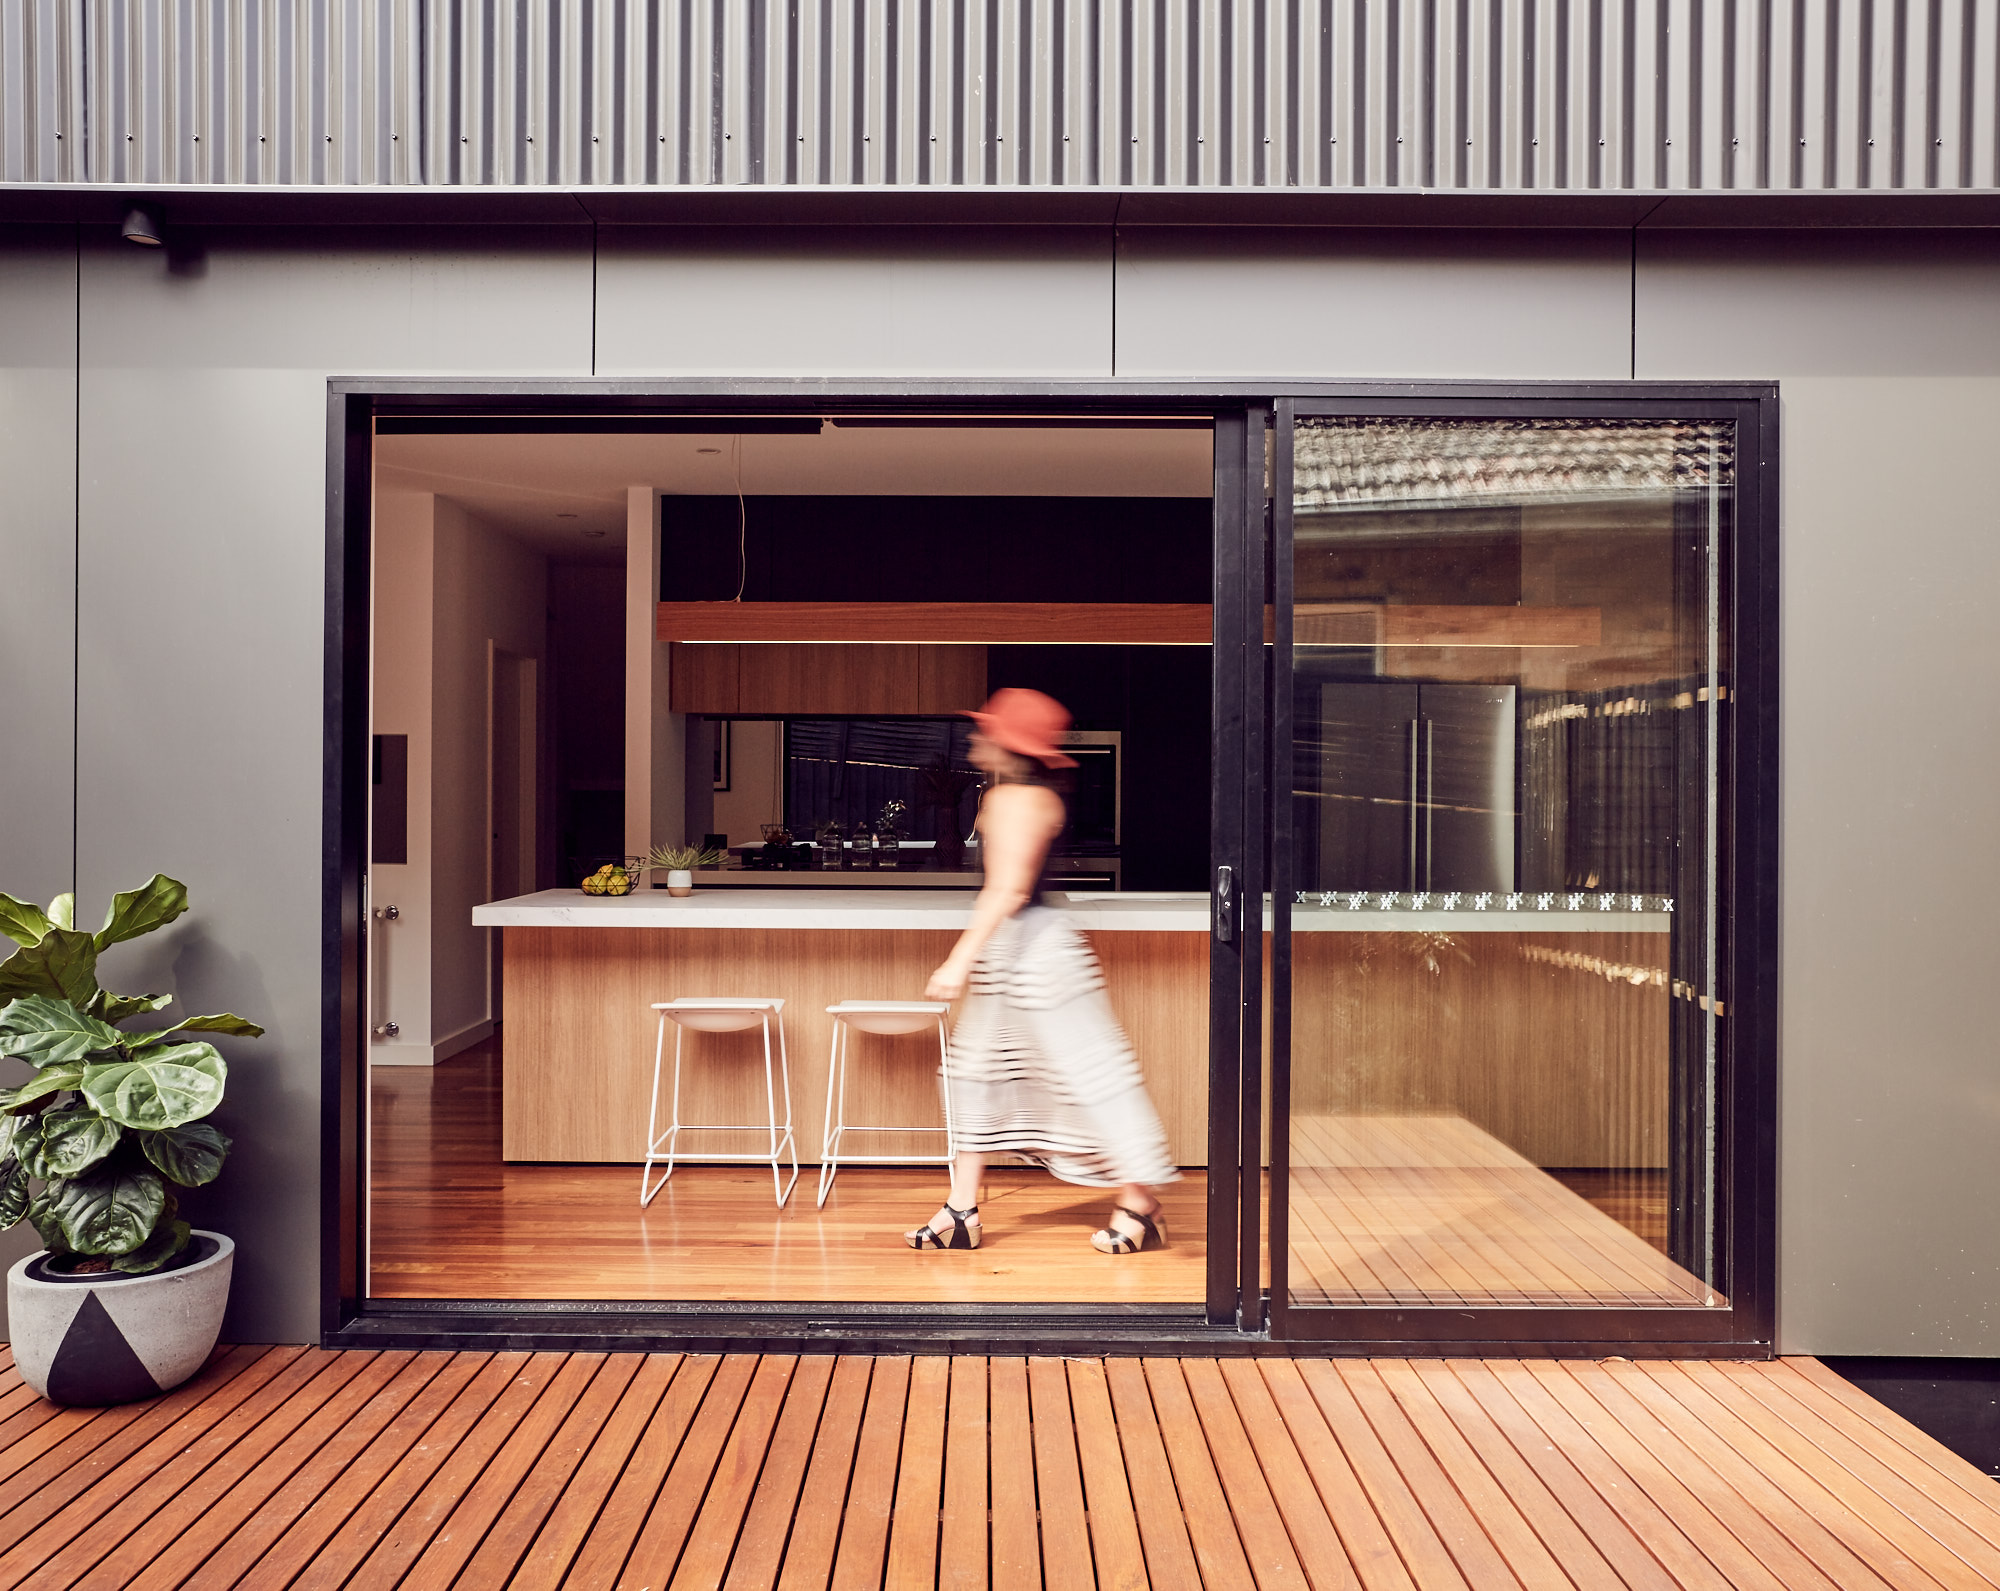 Gallery Of Blackburn House By Archiblox Local Australian Architecture & Design Blackburn, Vic Image 5